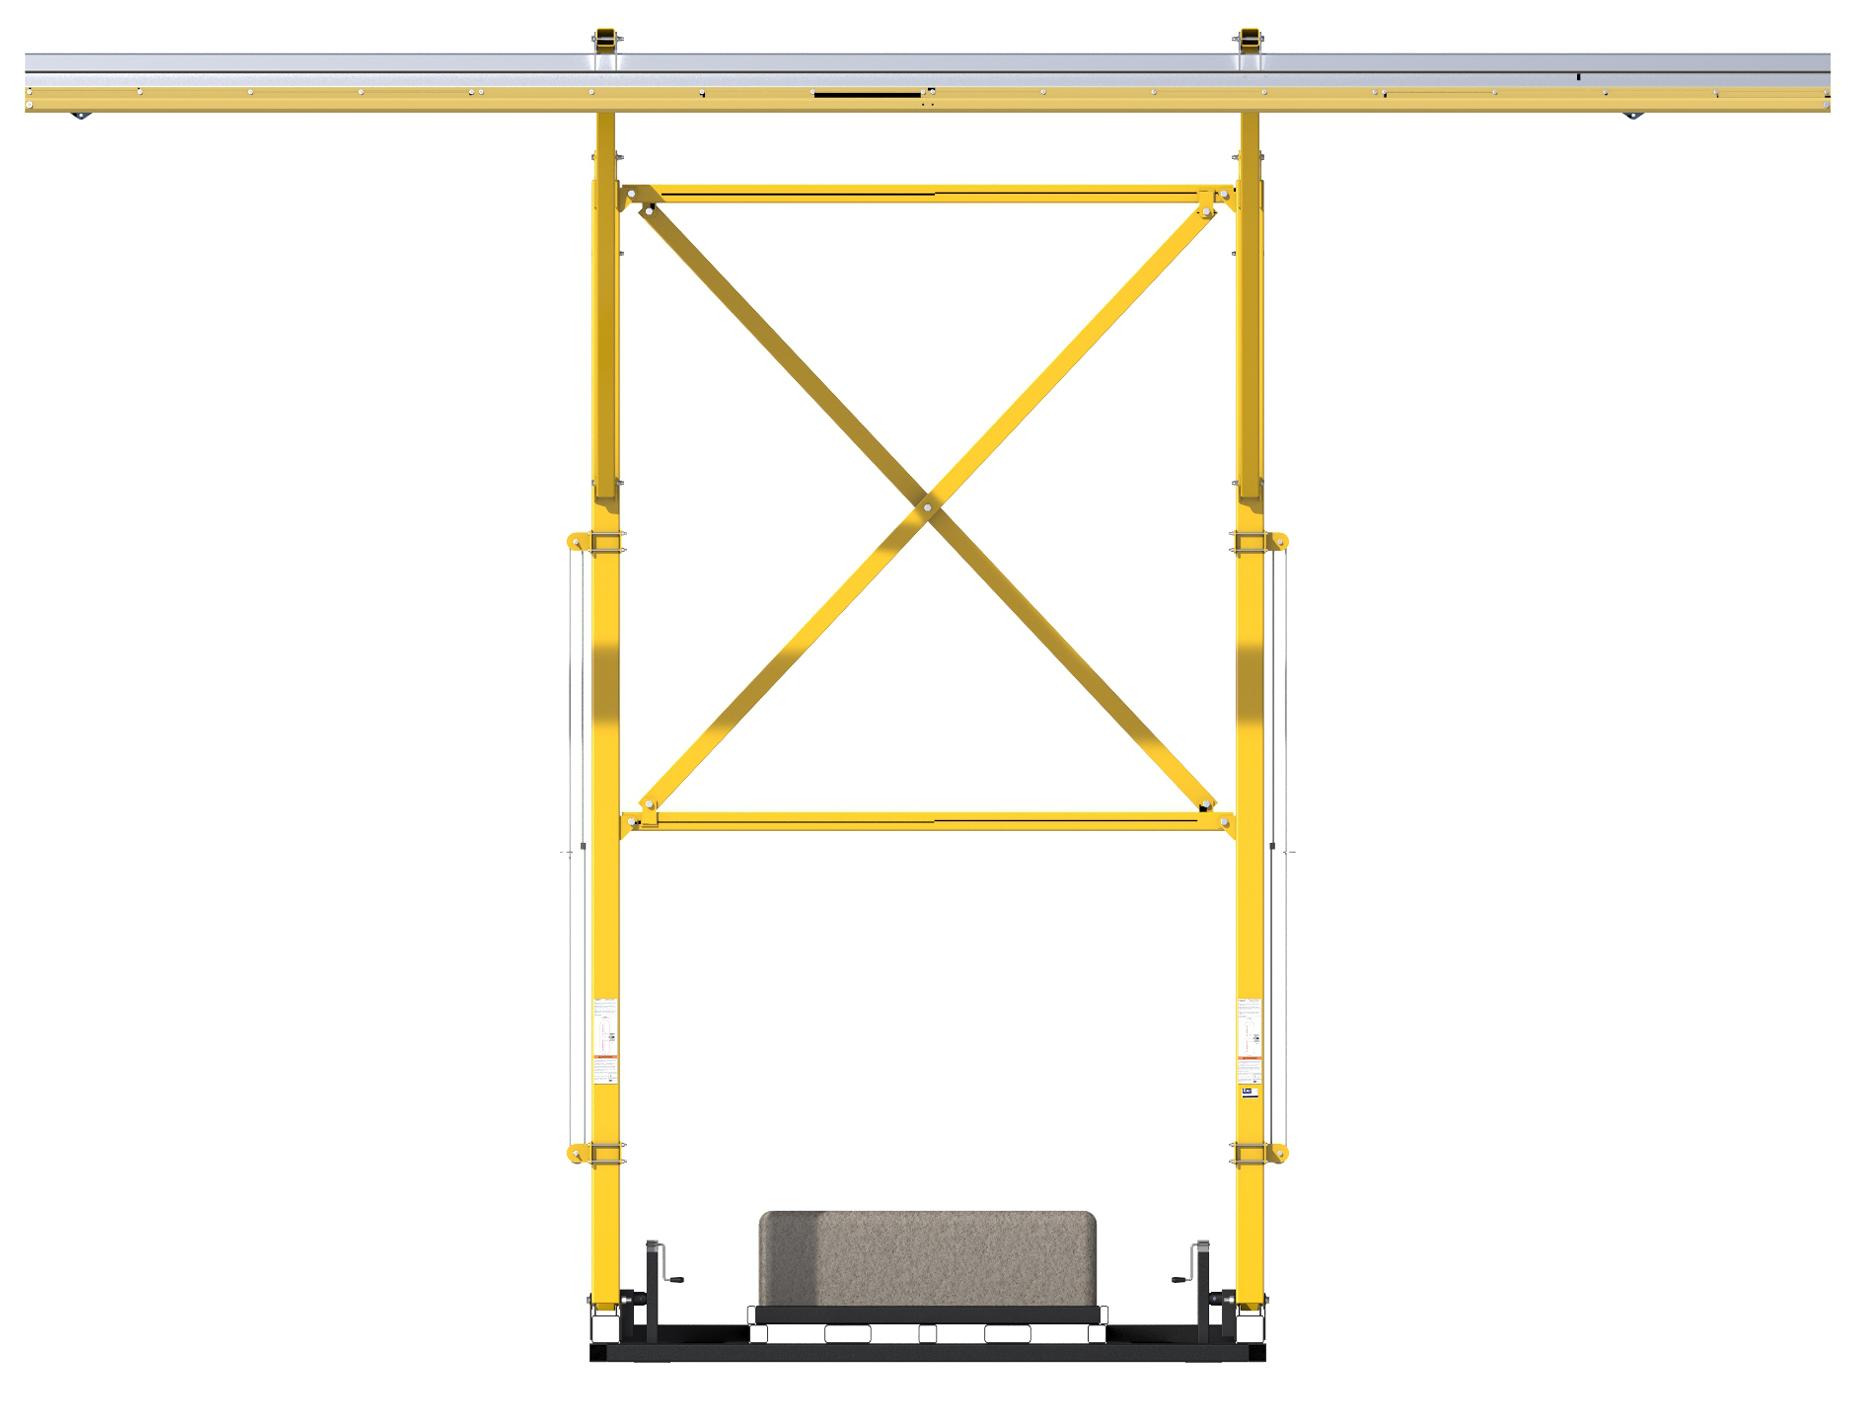 FlexiGuard Counterweighted Overhead 32 ft. Rail Fall Arrest System, 22 ft. Ht., Counterweights Included, Front View